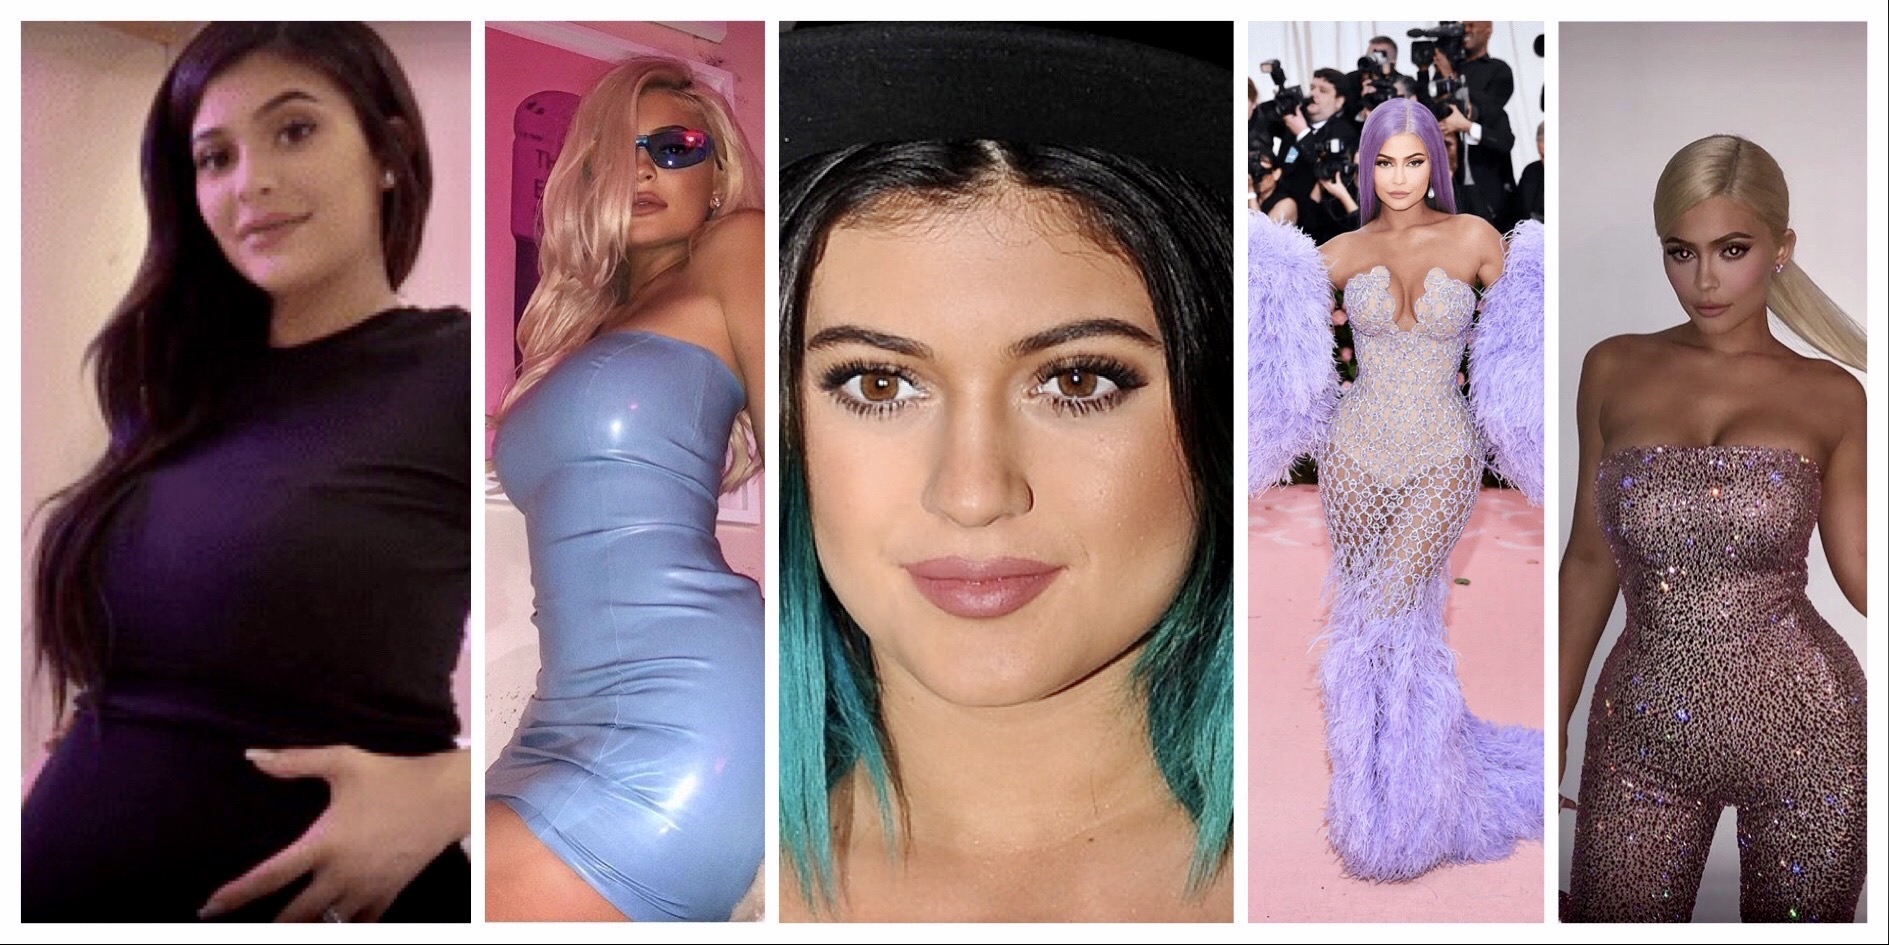 Group-Costumes for Halloween | 10 Kylie Jenner-Eras